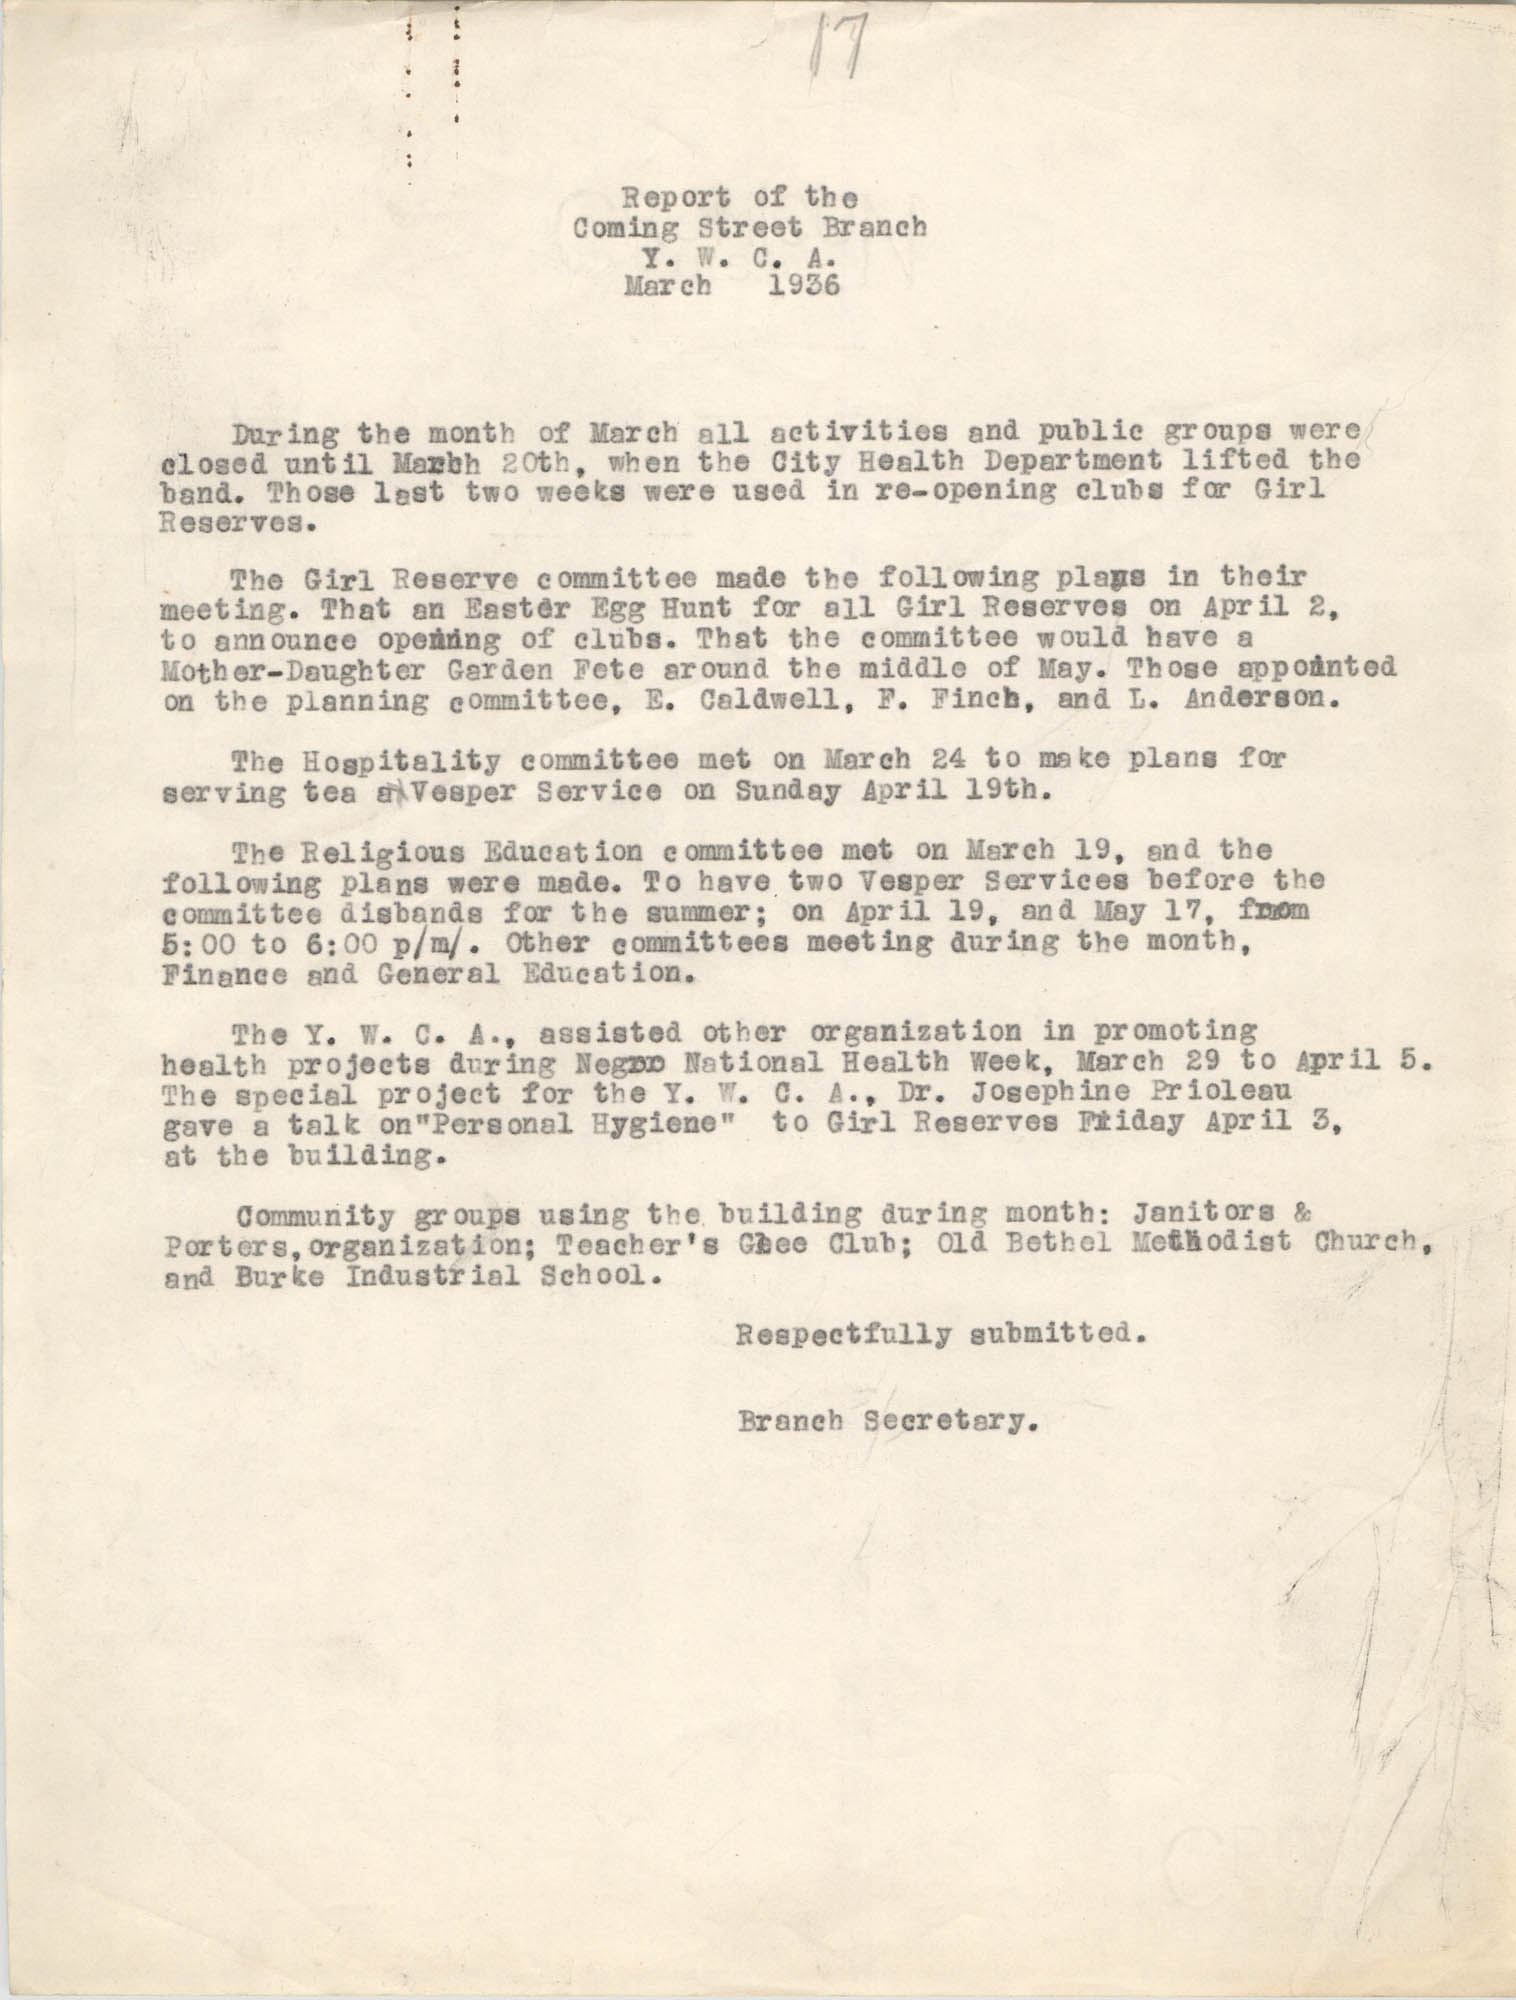 Monthly Report for the Coming Street Y.W.C.A., March 1936